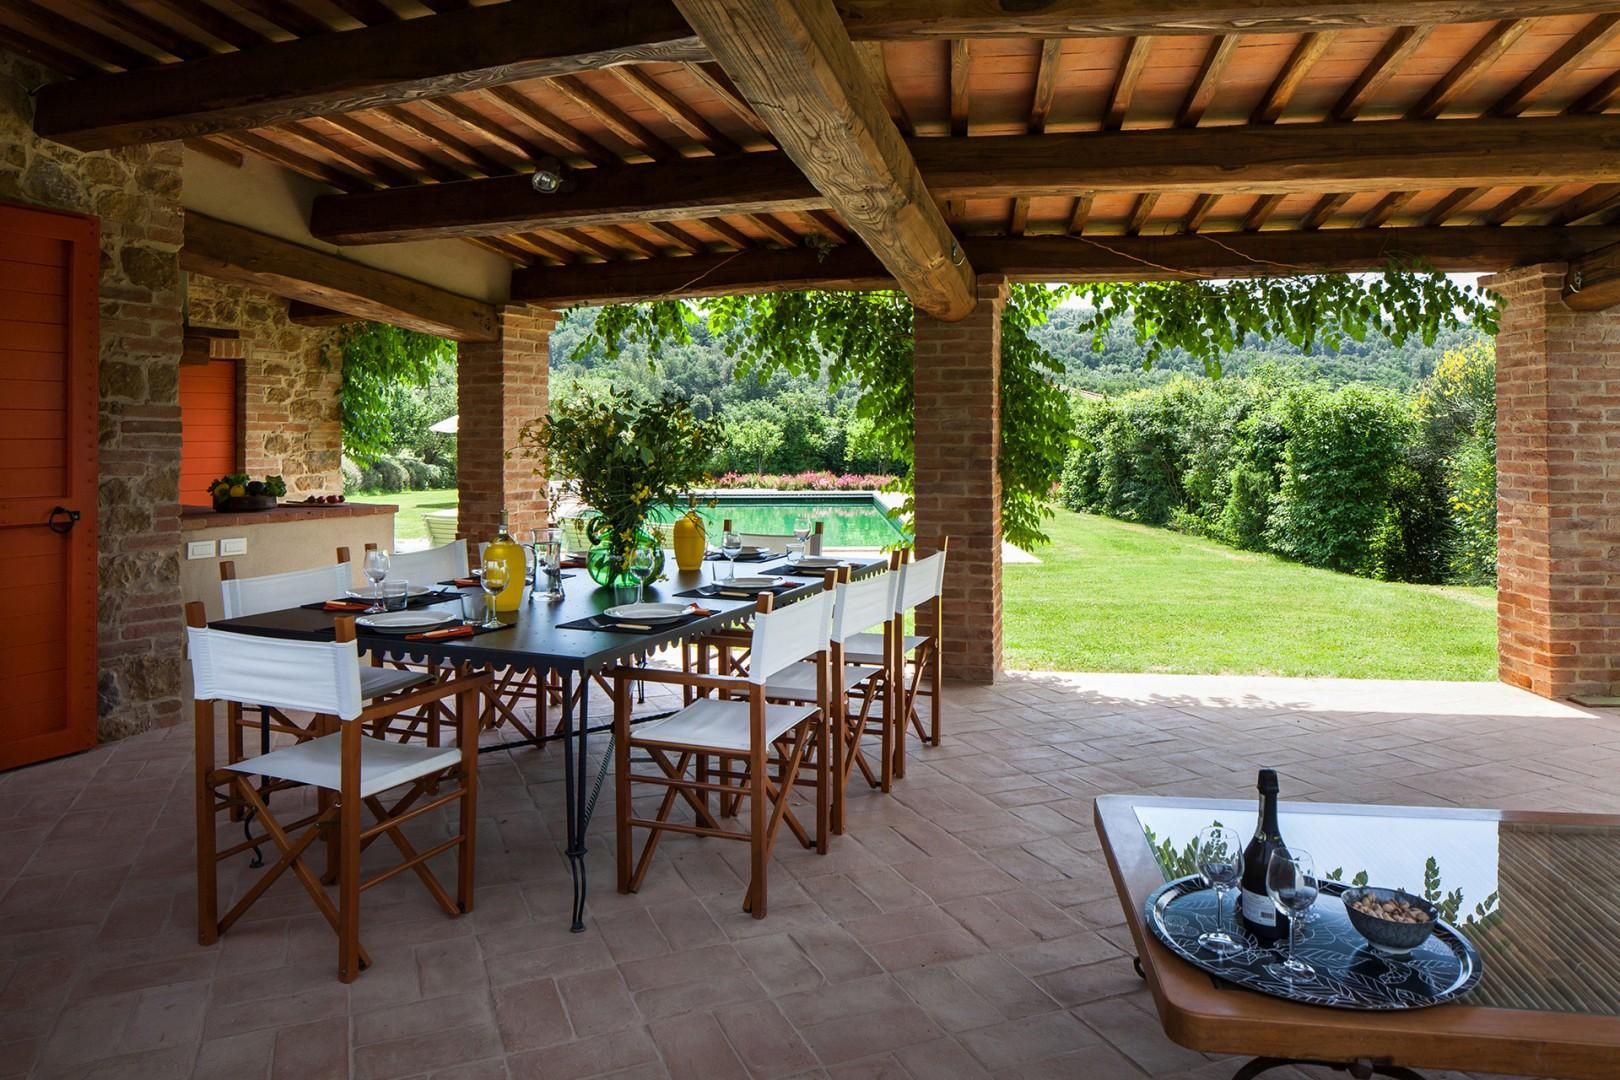 Dining table on the covered terrace.